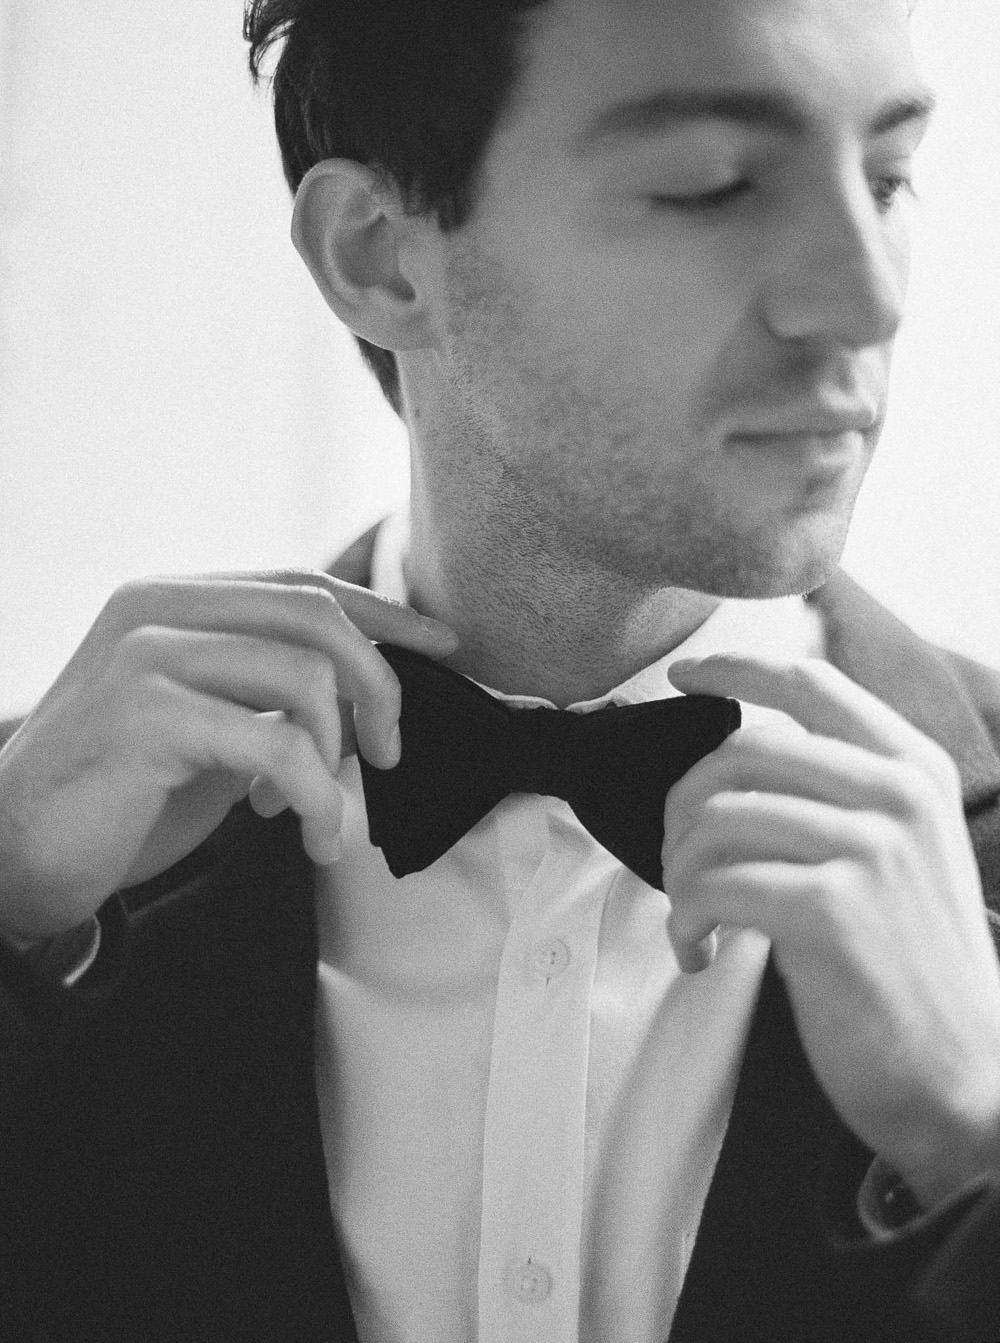 Zara Men Suit for Groom bow tie black and white film